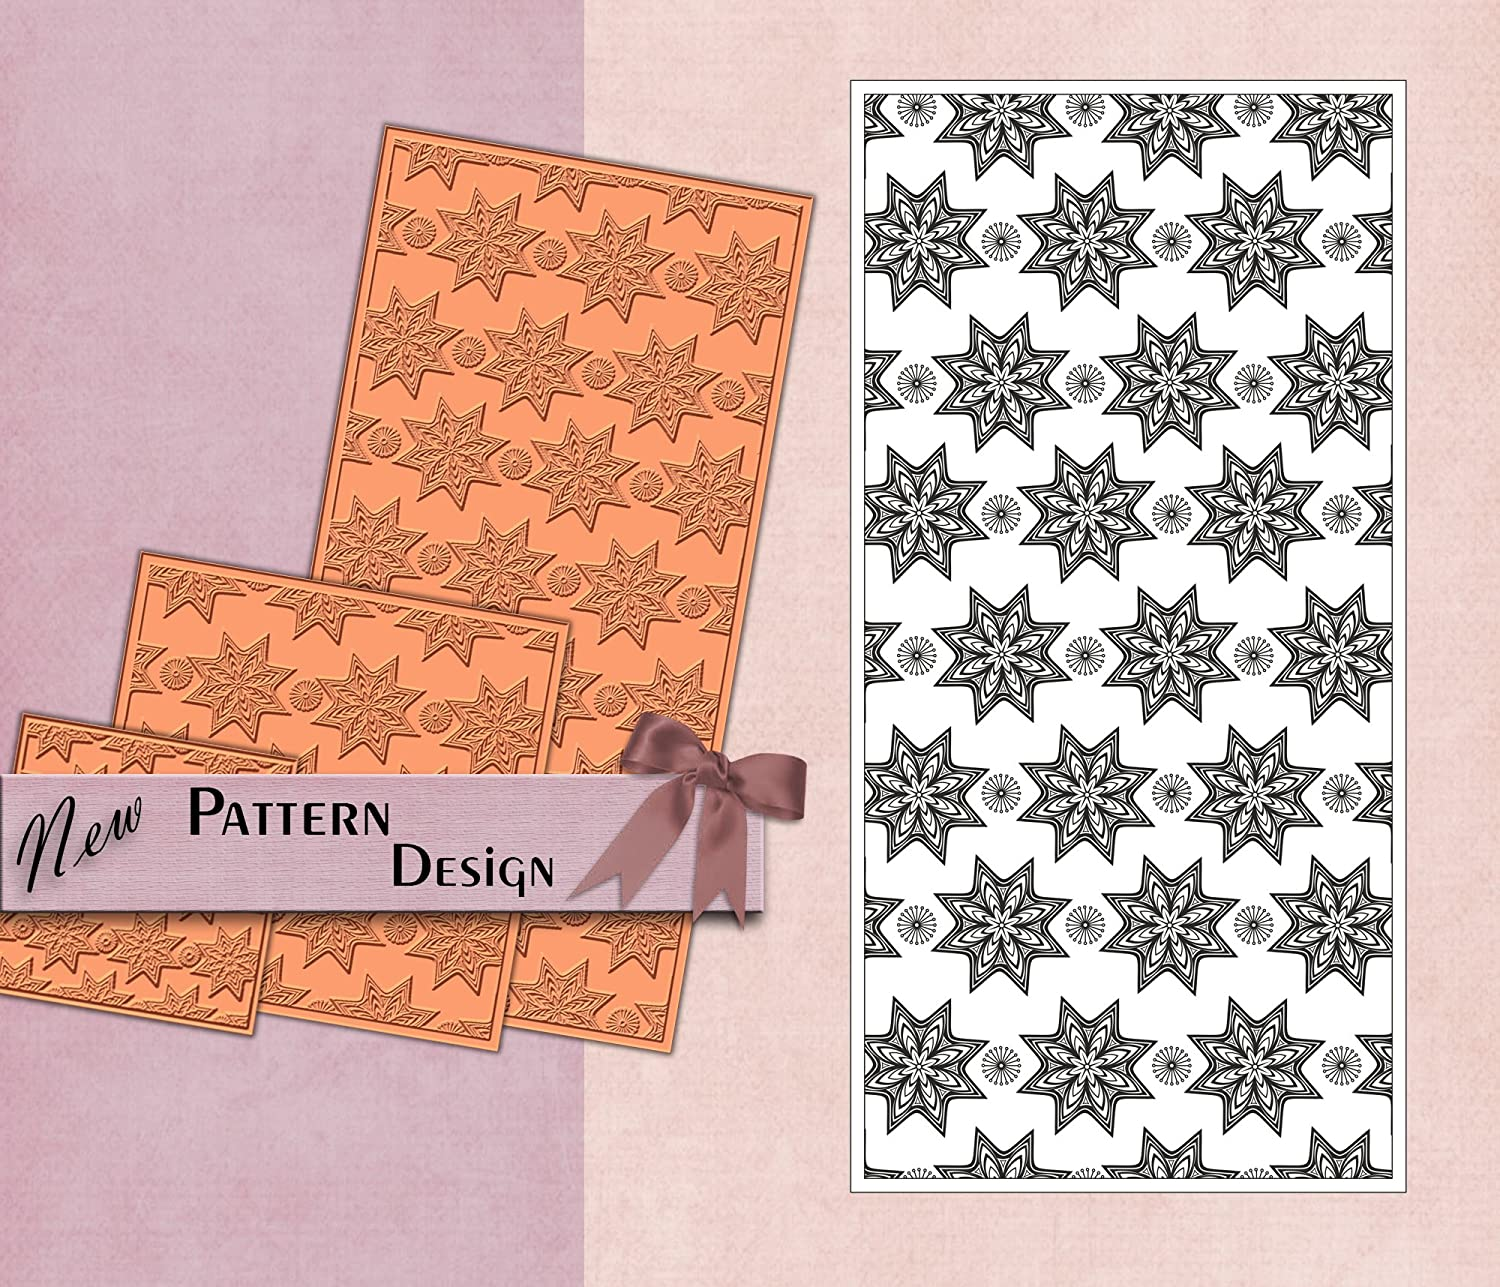 PRINTVALUE POLYMER TEXTURE STAMP ABSTRACT FLORAL PATTERN RUBBER TEMPLATE FABRIC & PAPER DIY CRAFT SUPPLY